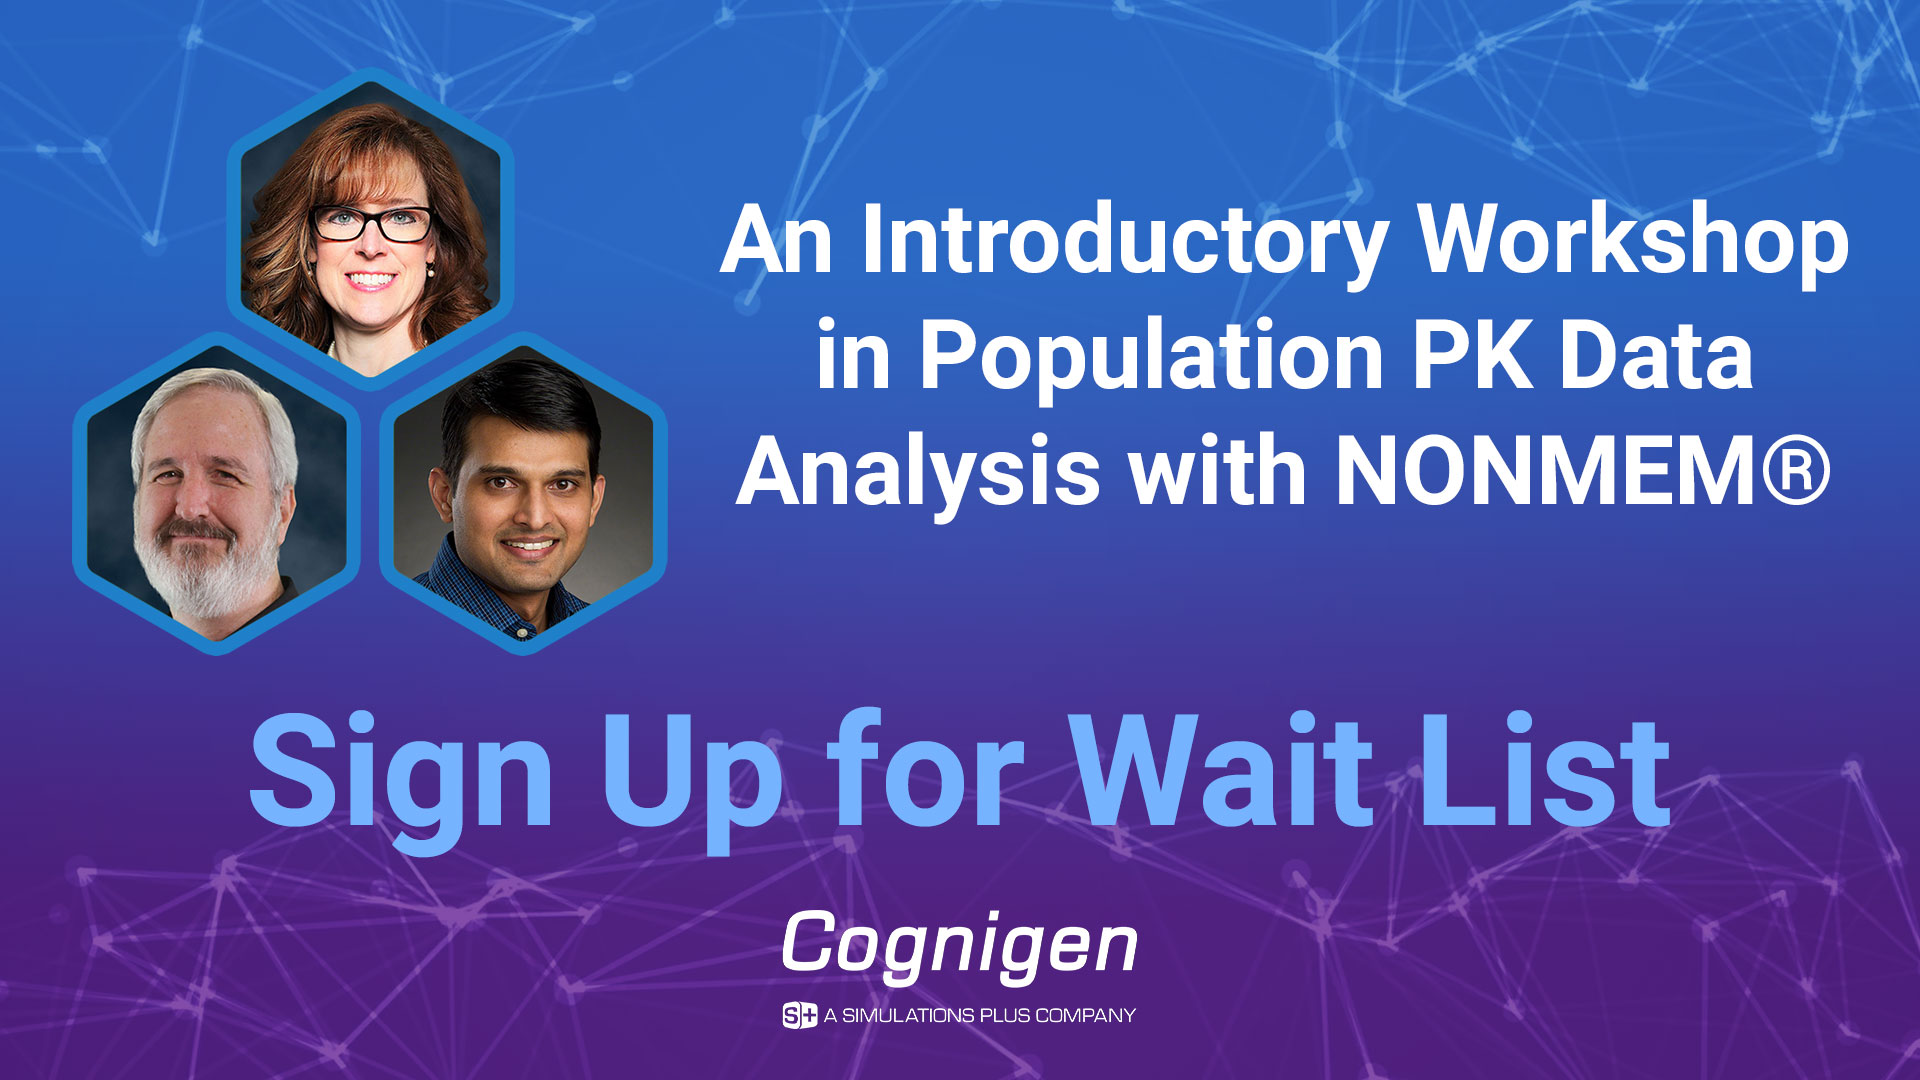 an introductory workshop in population PK data analysis with NOMEM sign up for wait list Cognigen